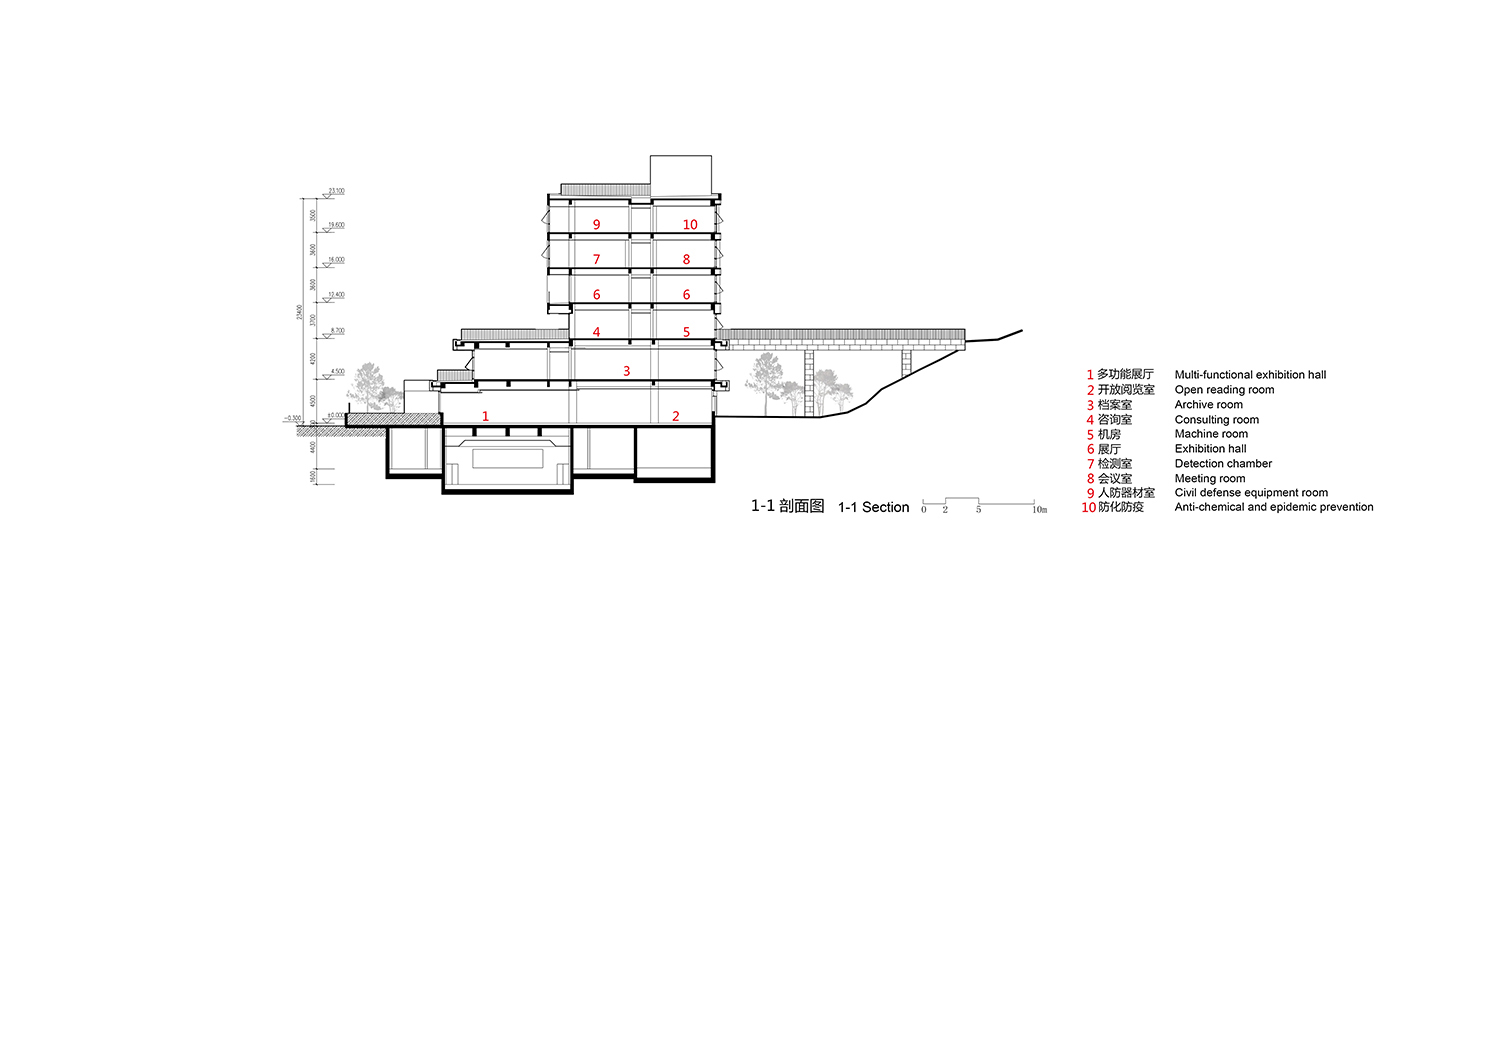 Section-2 the Architectural Design and Research Institute of Zhejiang University Co., Ltd}